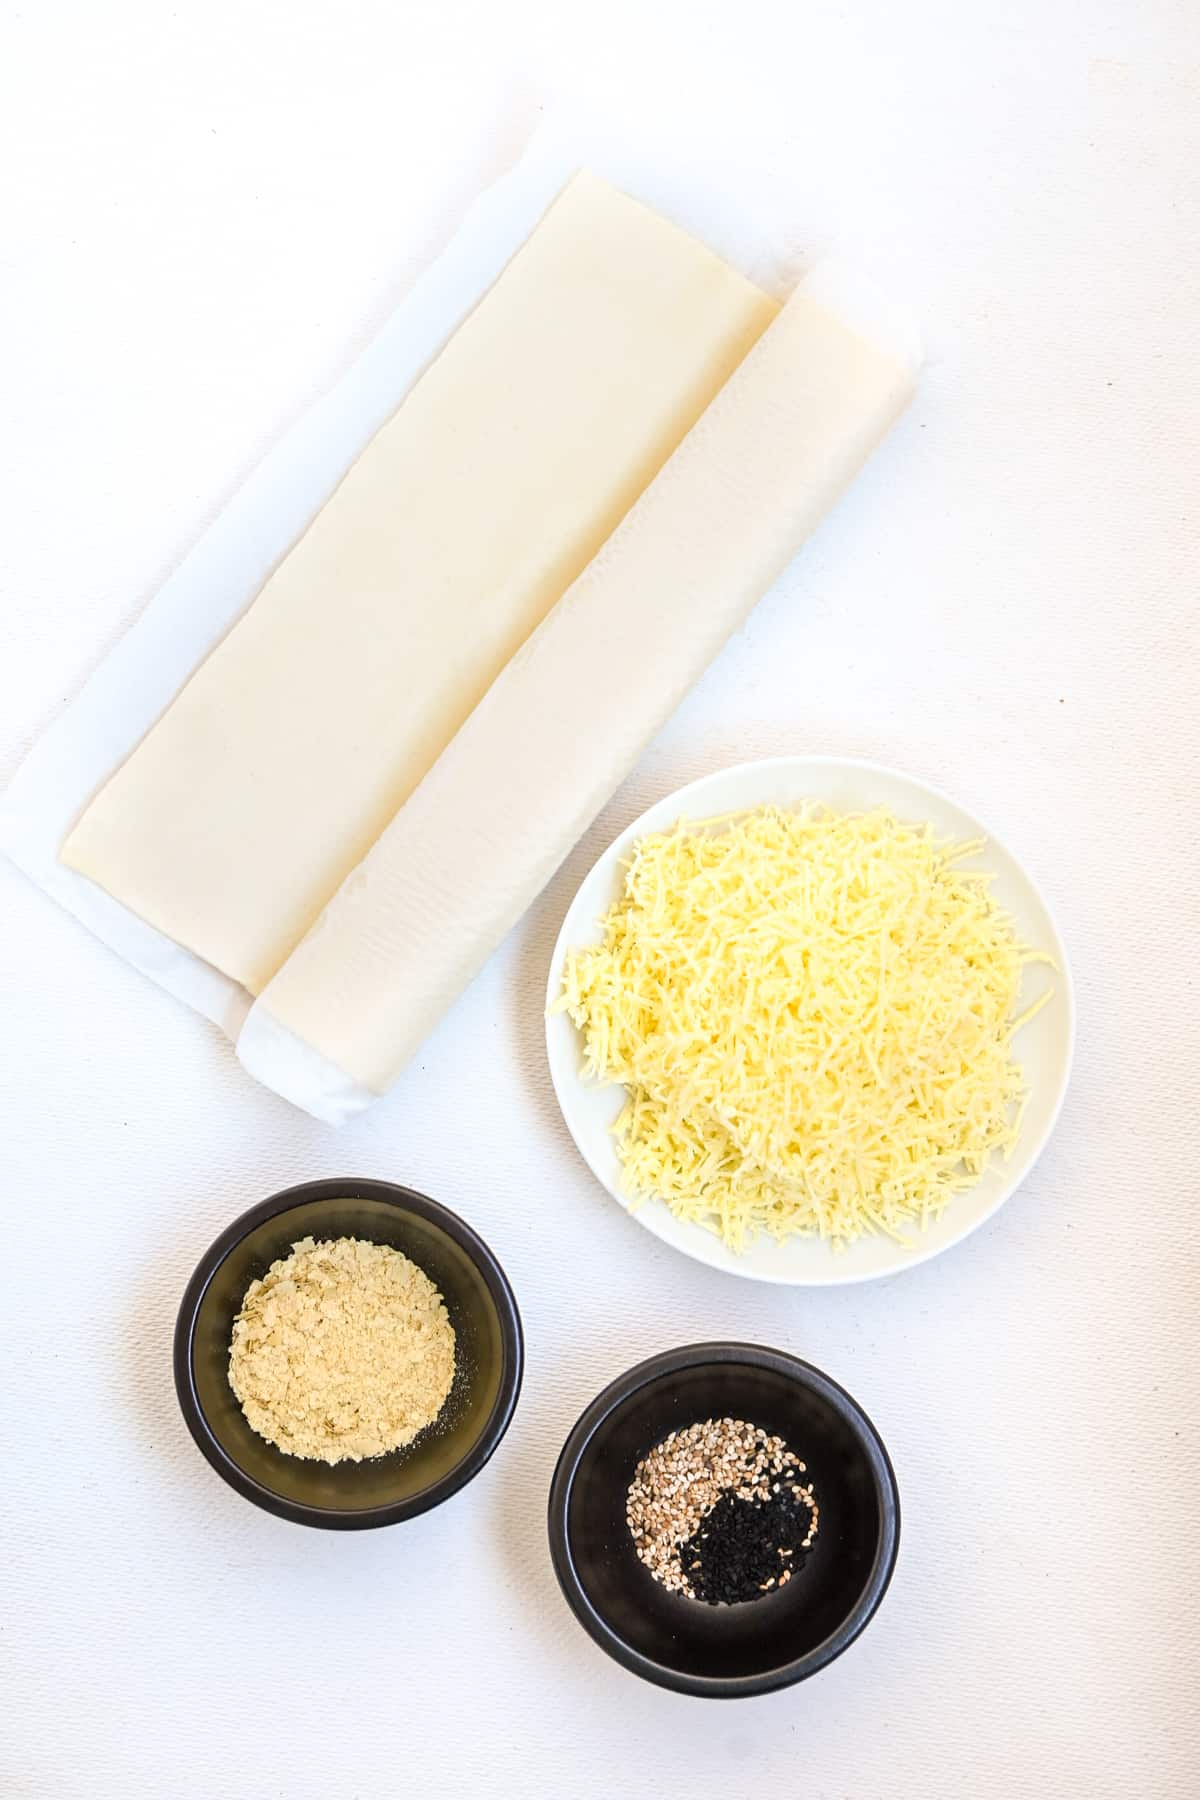 The main ingredients to make vegan cheese straws: Puff pastry, vegan cheese, sesame and nigella seeds and nutritional yeast flakes.